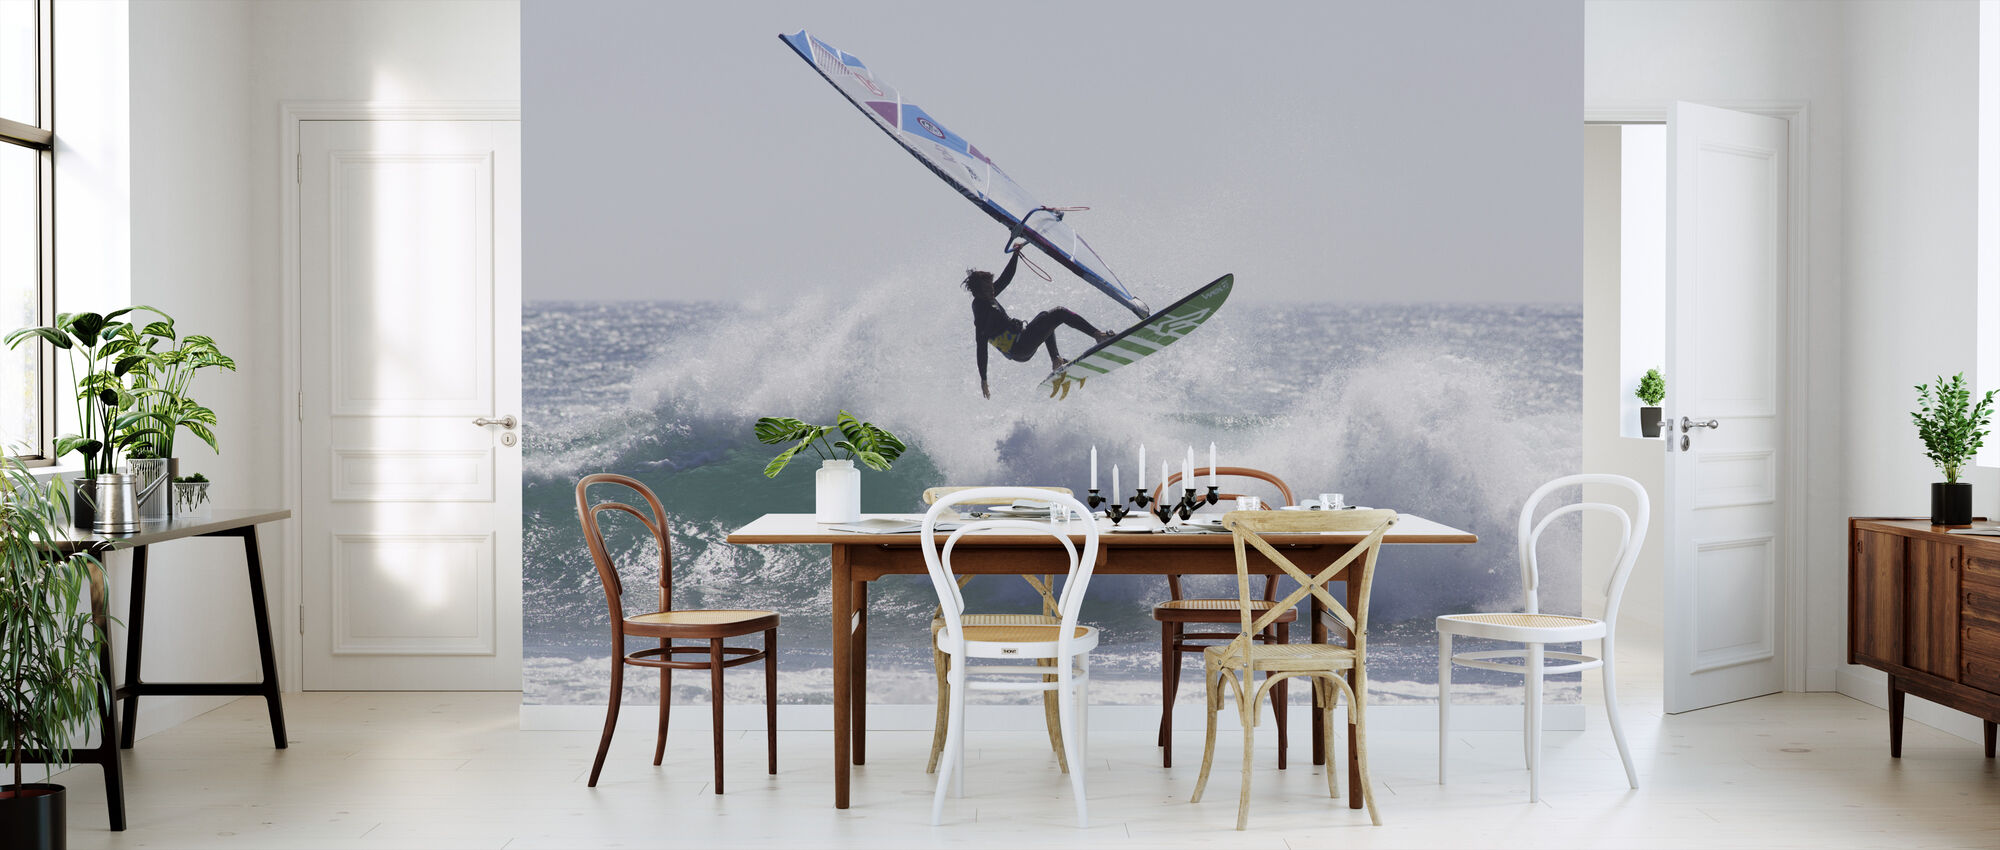 Windsurfing Jump - Wallpaper - Kitchen